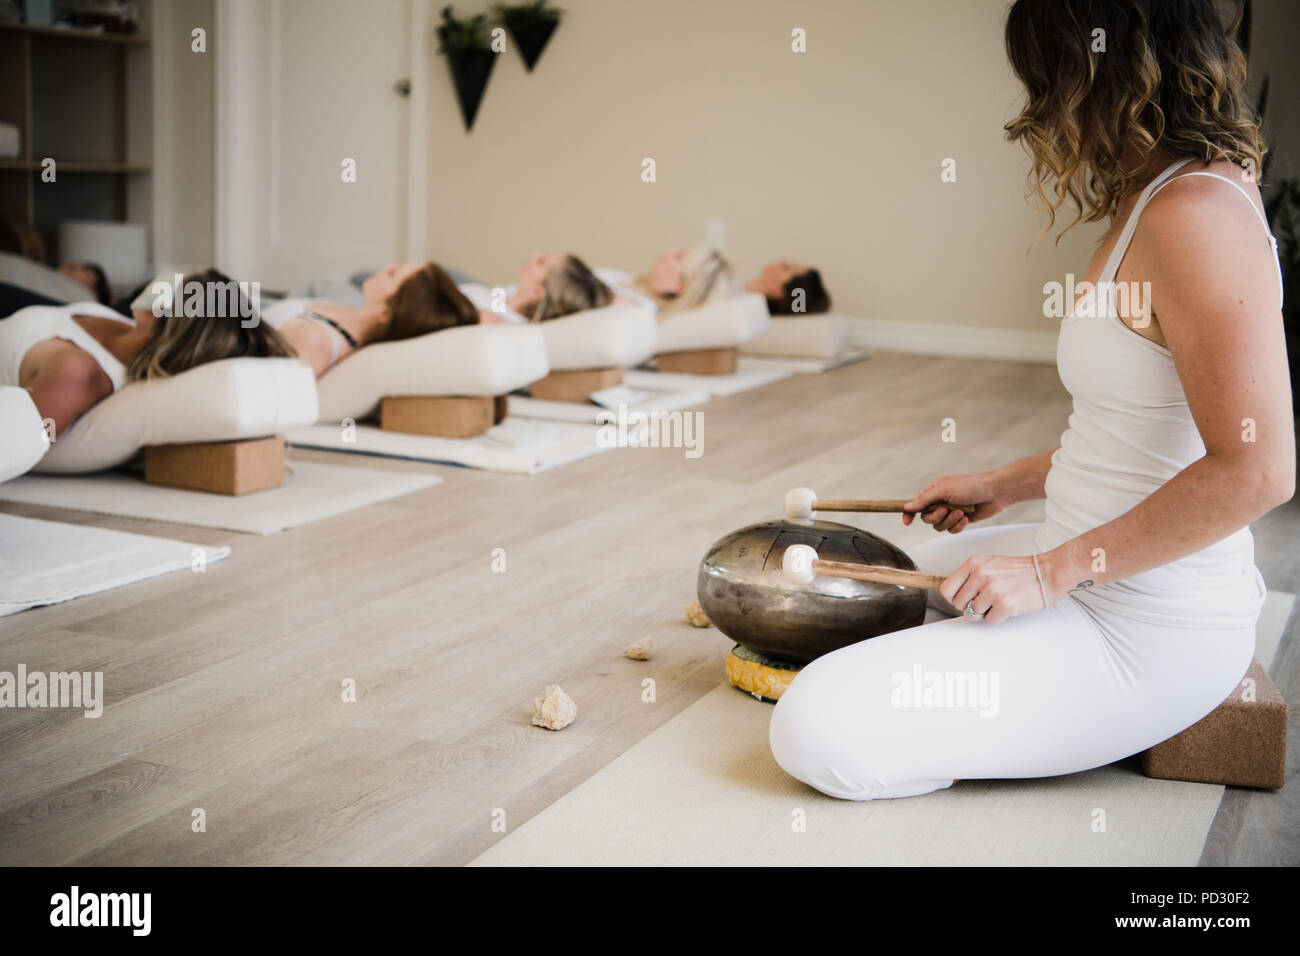 Women in relaxation pose after yoga class at retreat - Stock Image